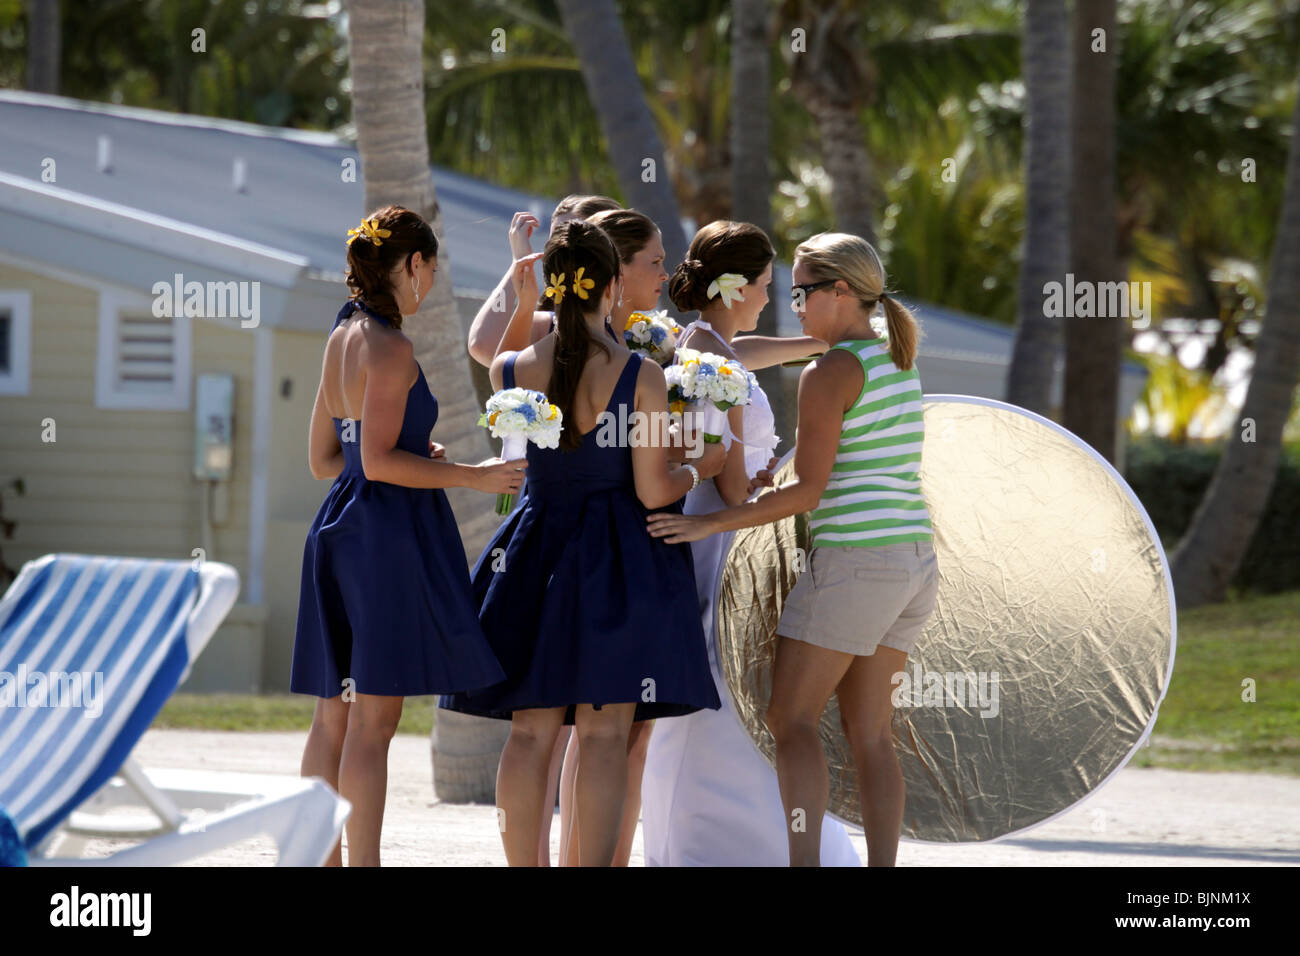 A Photography Assistant Helping Bride And Her Bridesmaids Get Ready For Wedding Photos On The Beach In Florida Keys